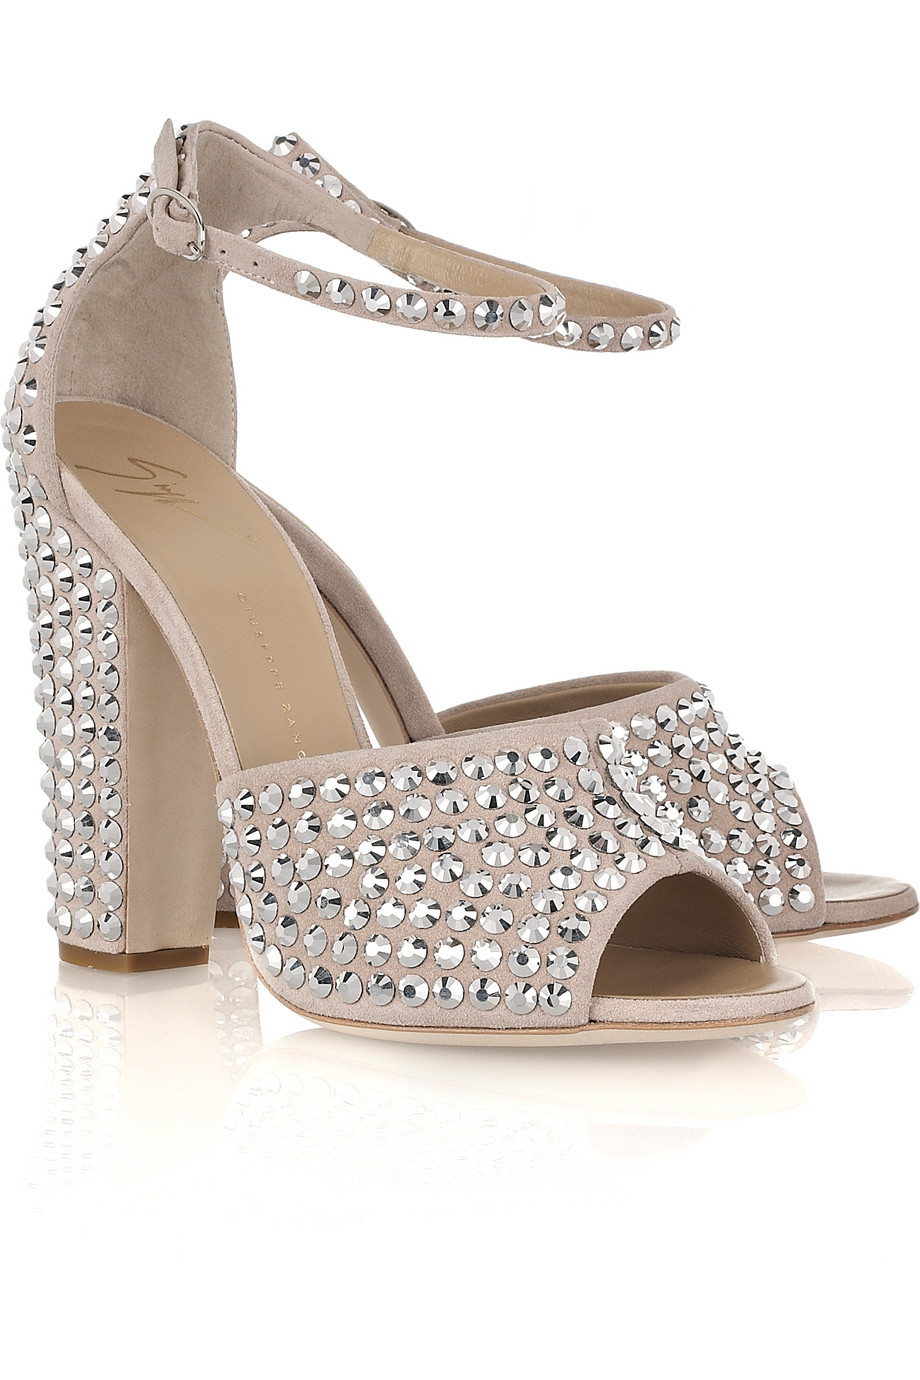 Lyst Giuseppe Zanotti Crystal Embellished Suede Sandals